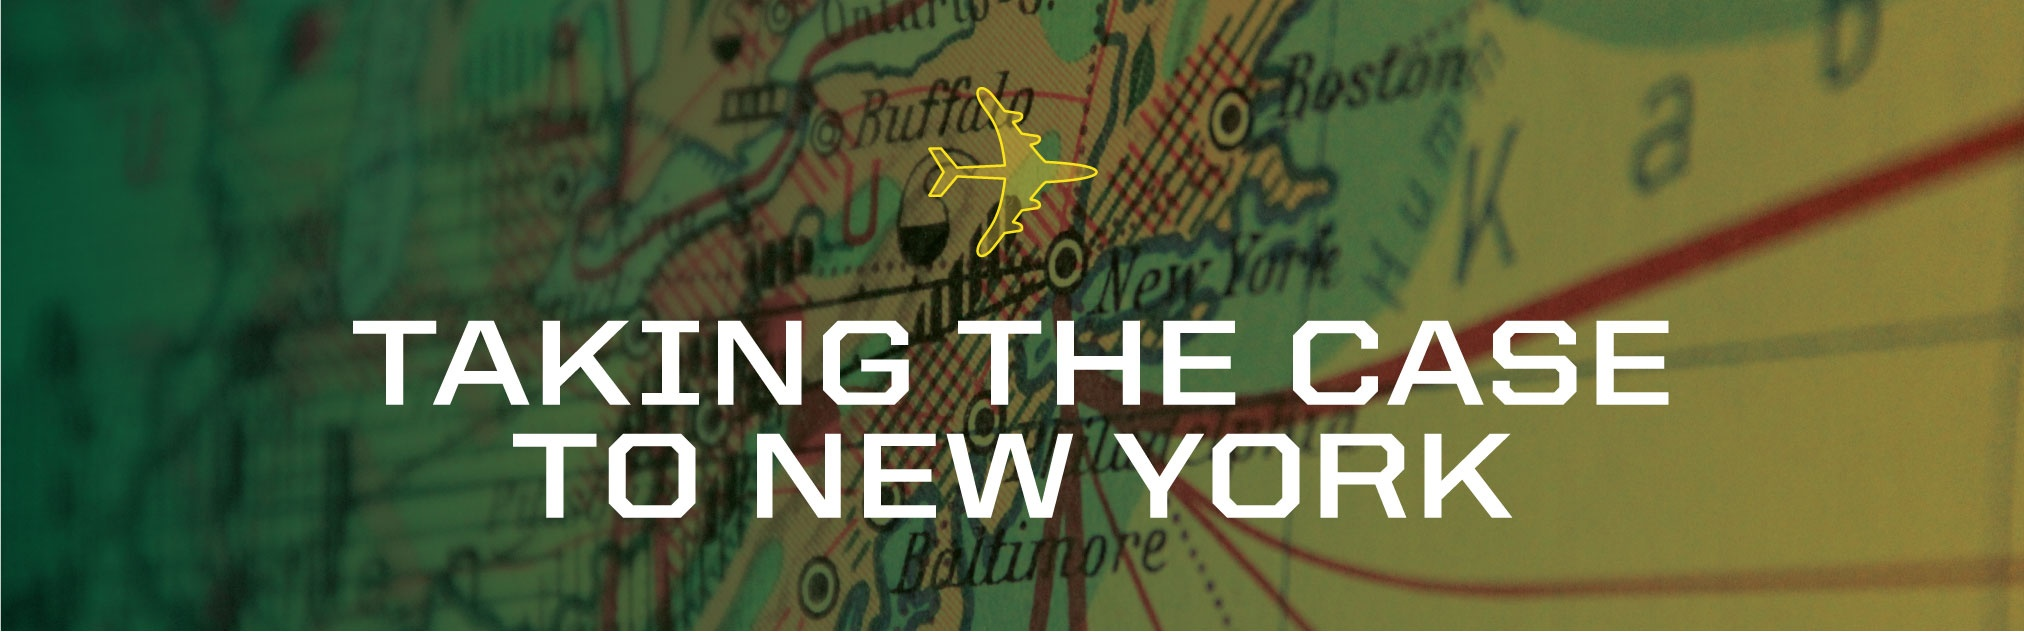 """Taking the Case to New York"" in the foreground of a map"